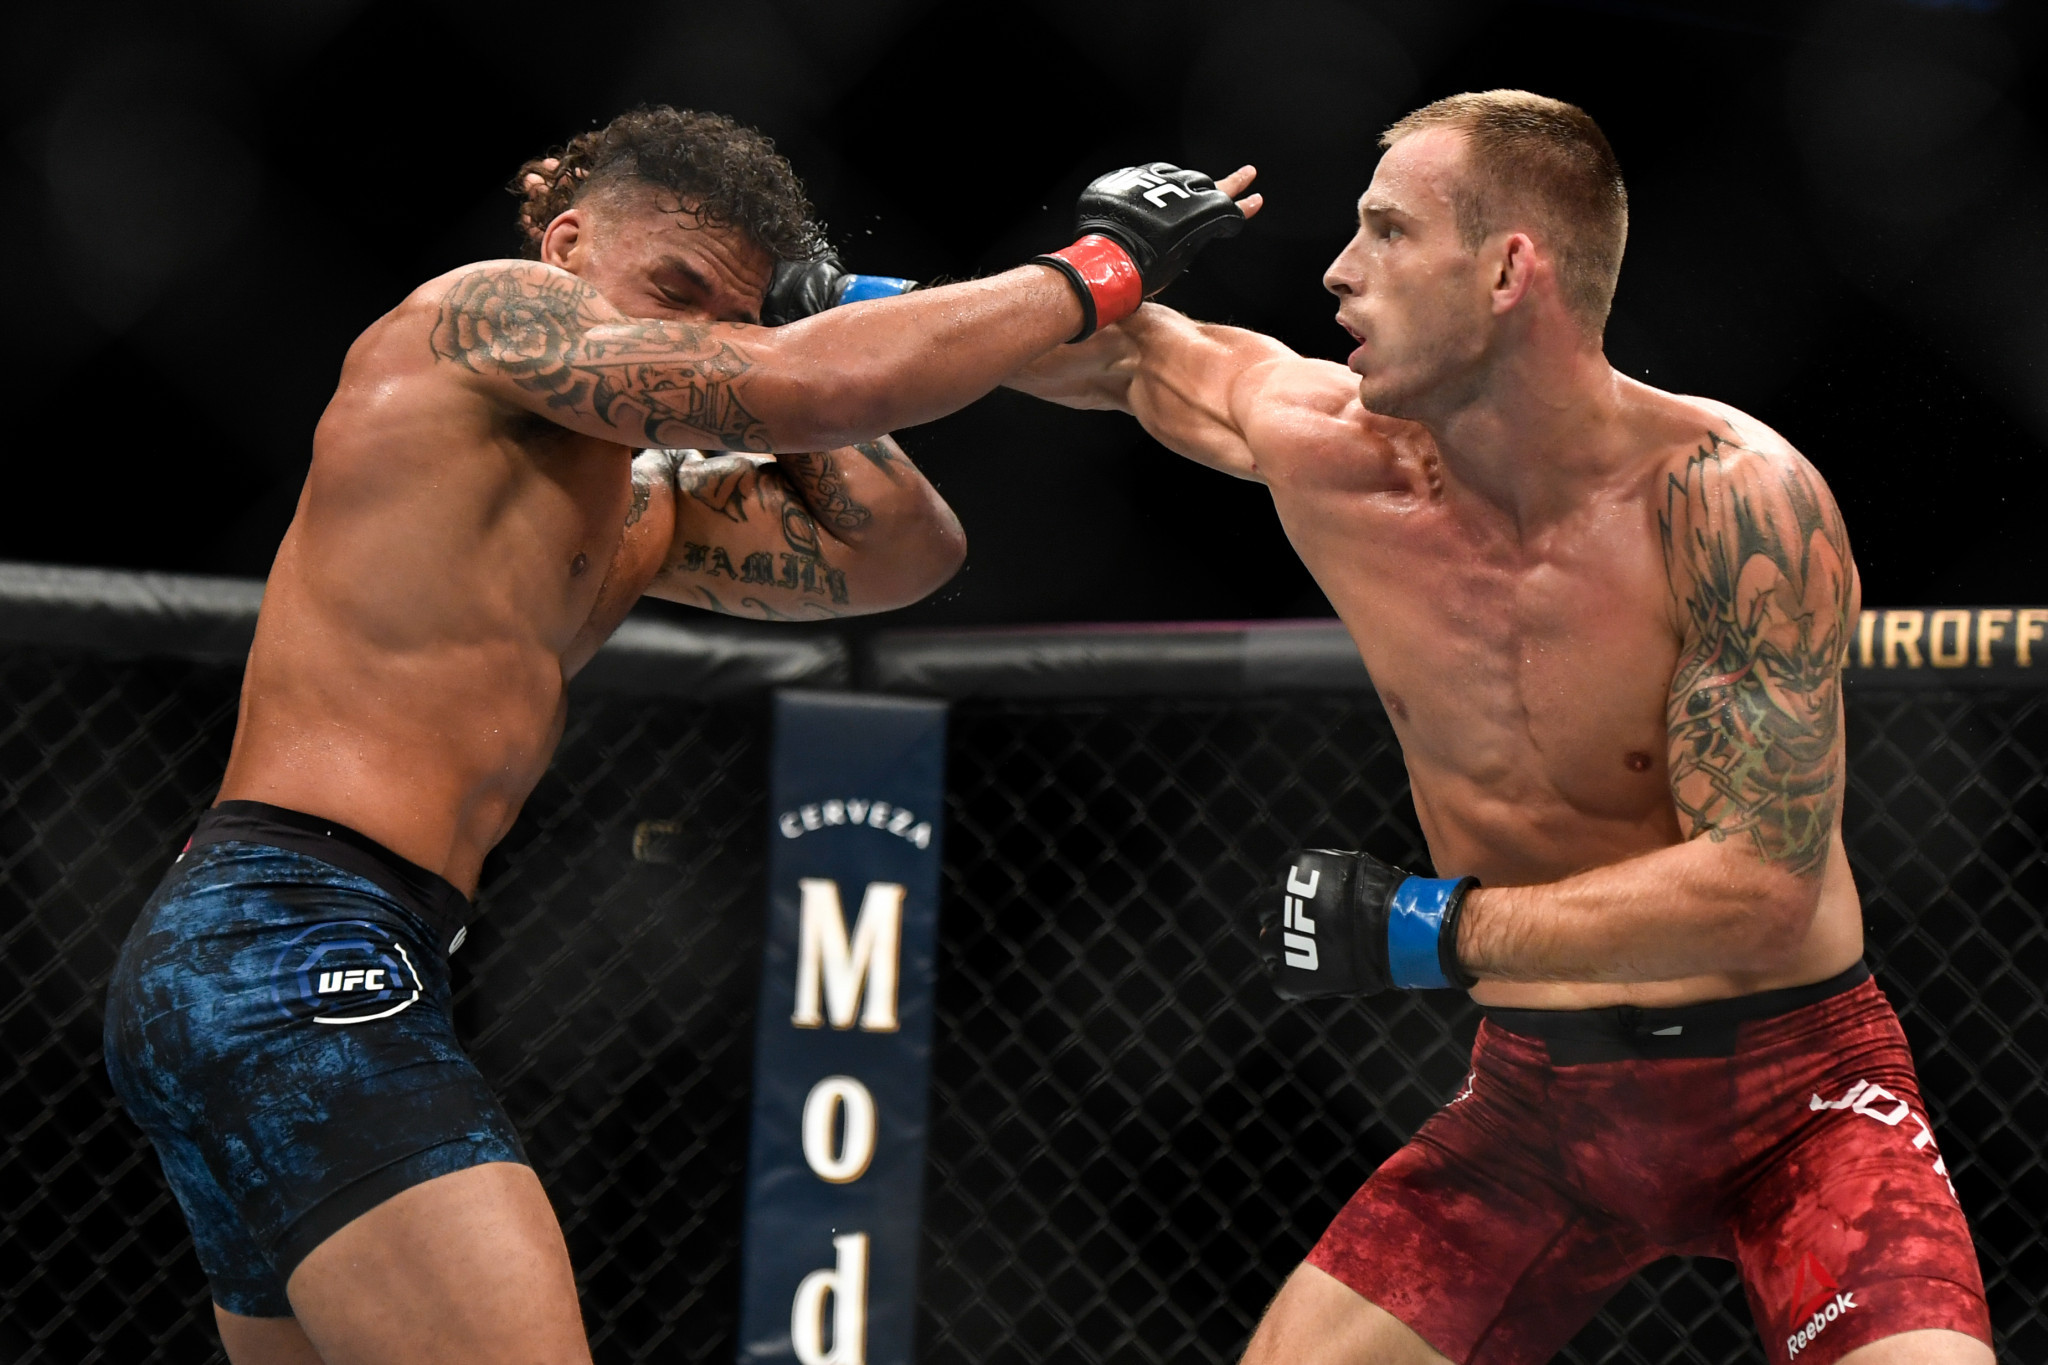 The International Mixed Martial Arts Federation has launched a public petition as part of its contracted battle to gain recognition from the Global Association of International Sports Federations ©Getty Images